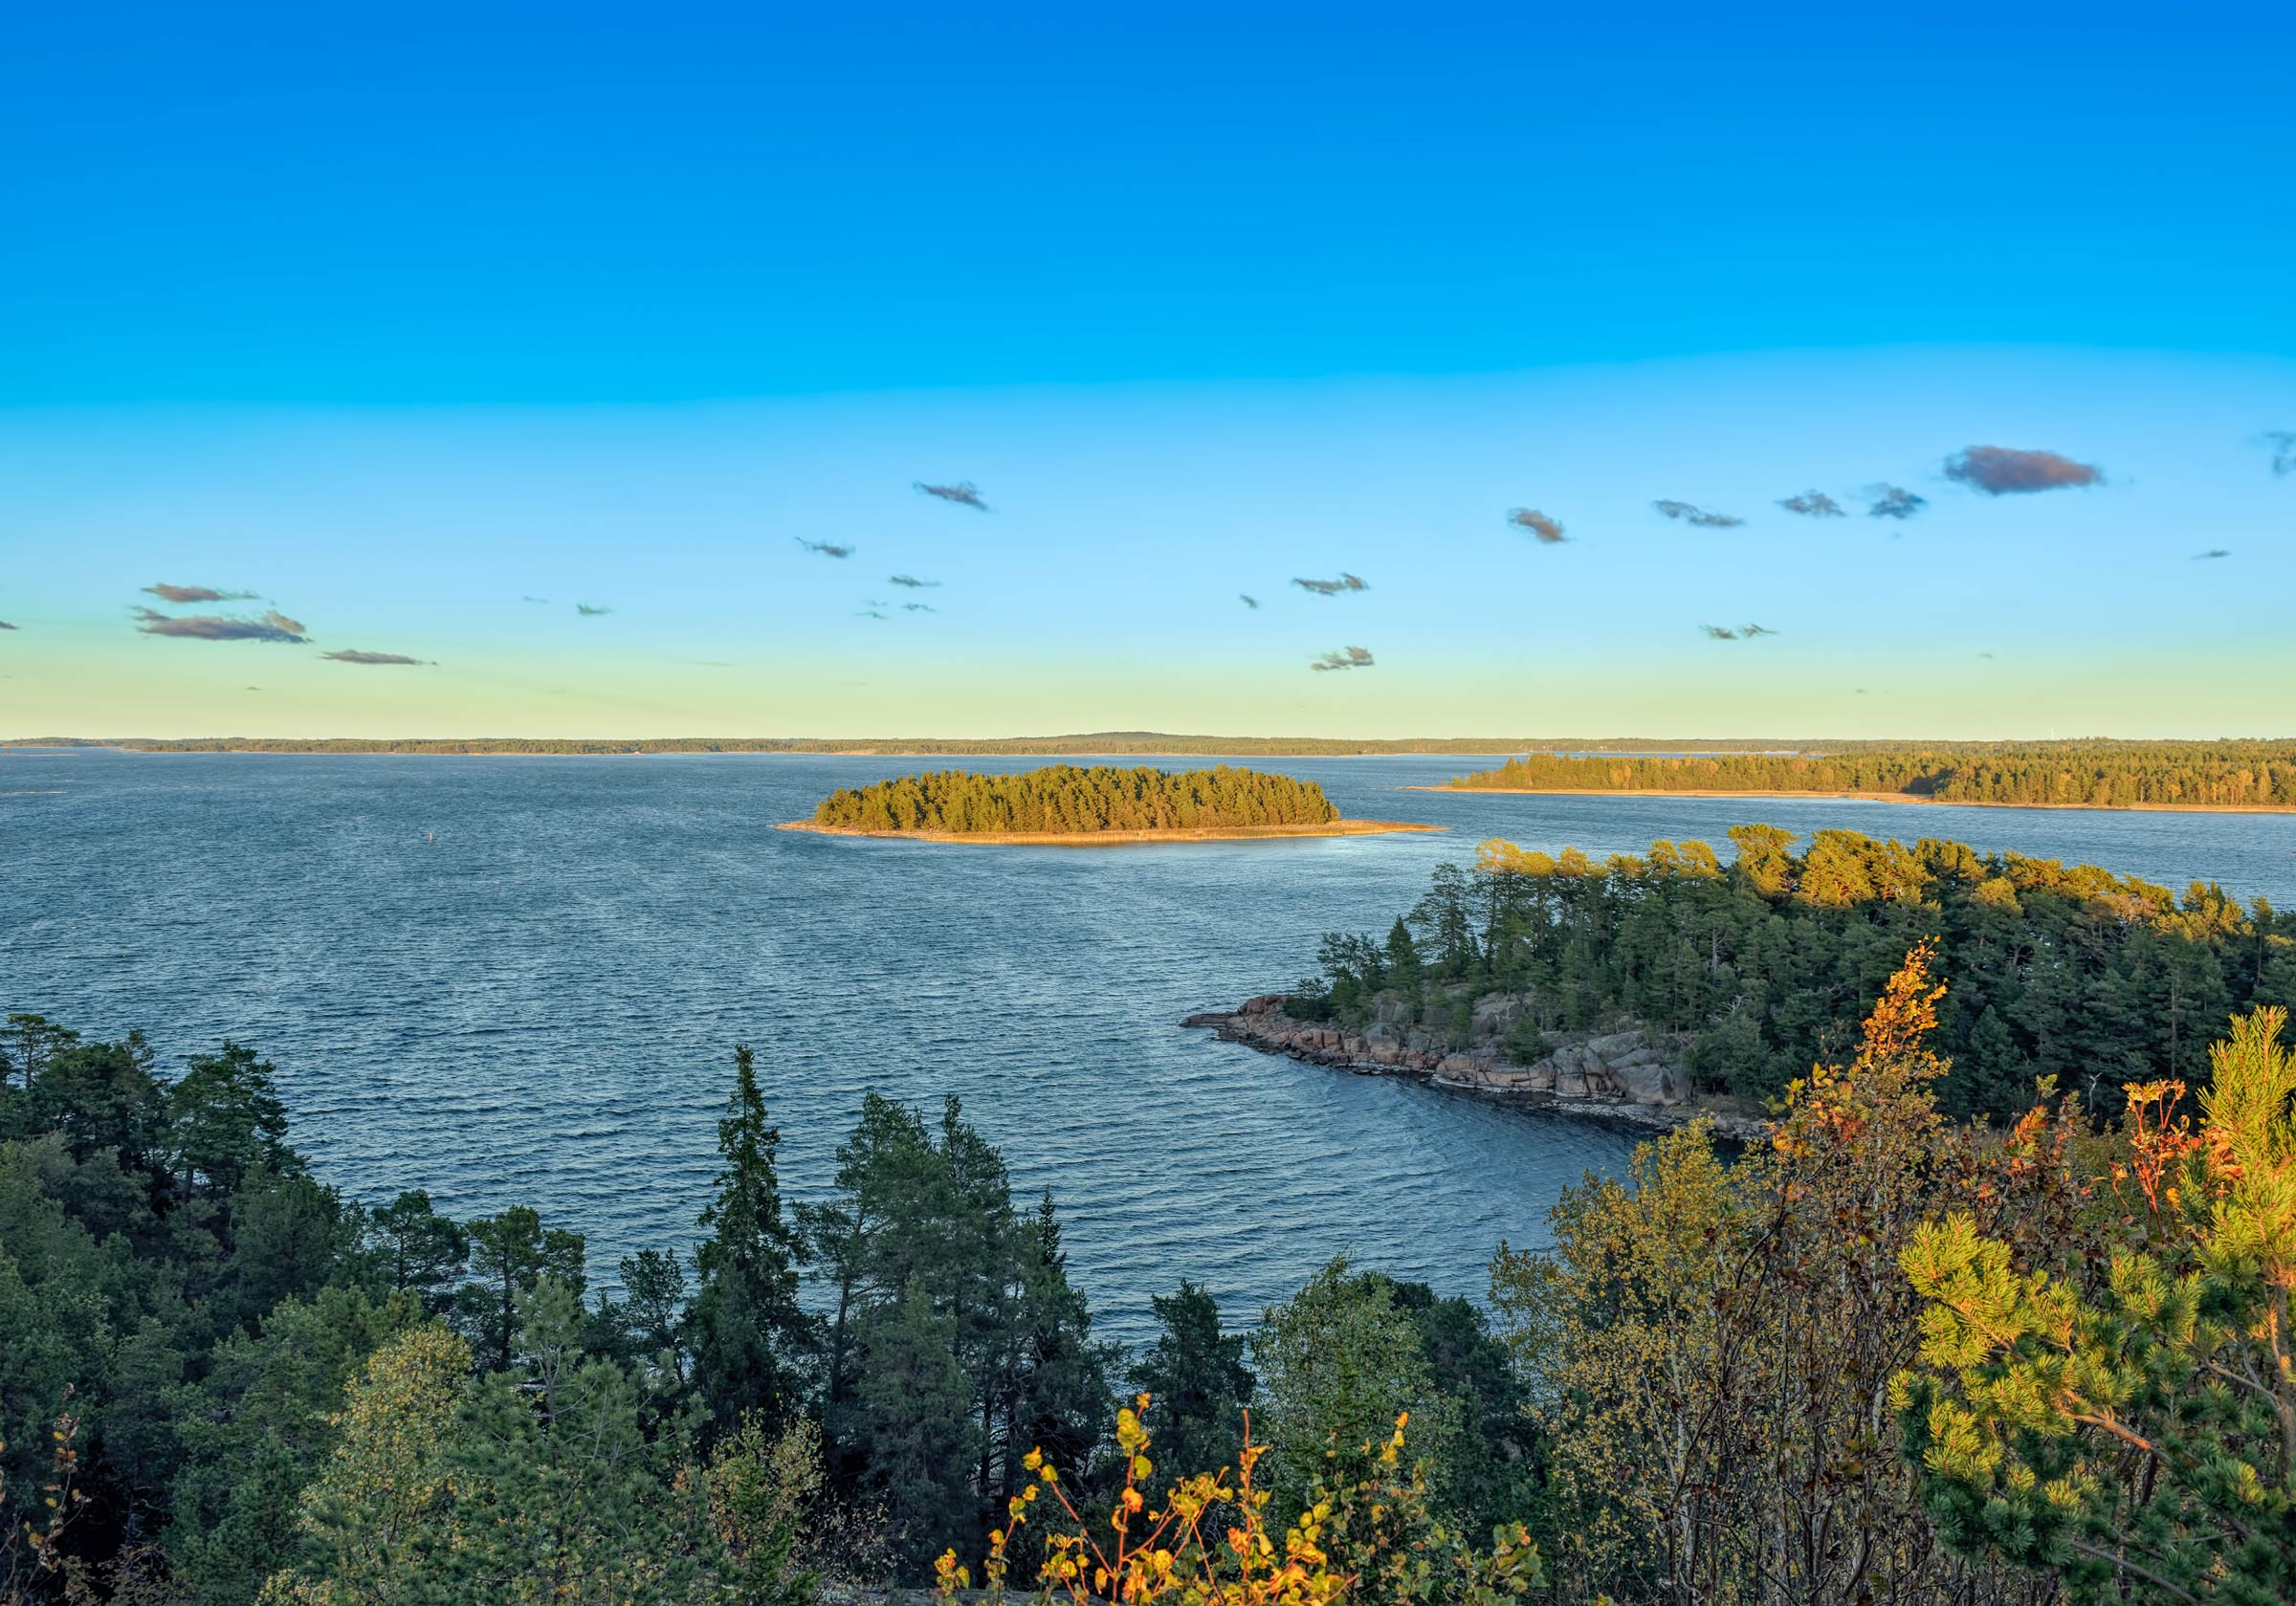 An aerial view of Aland Islands in Finland